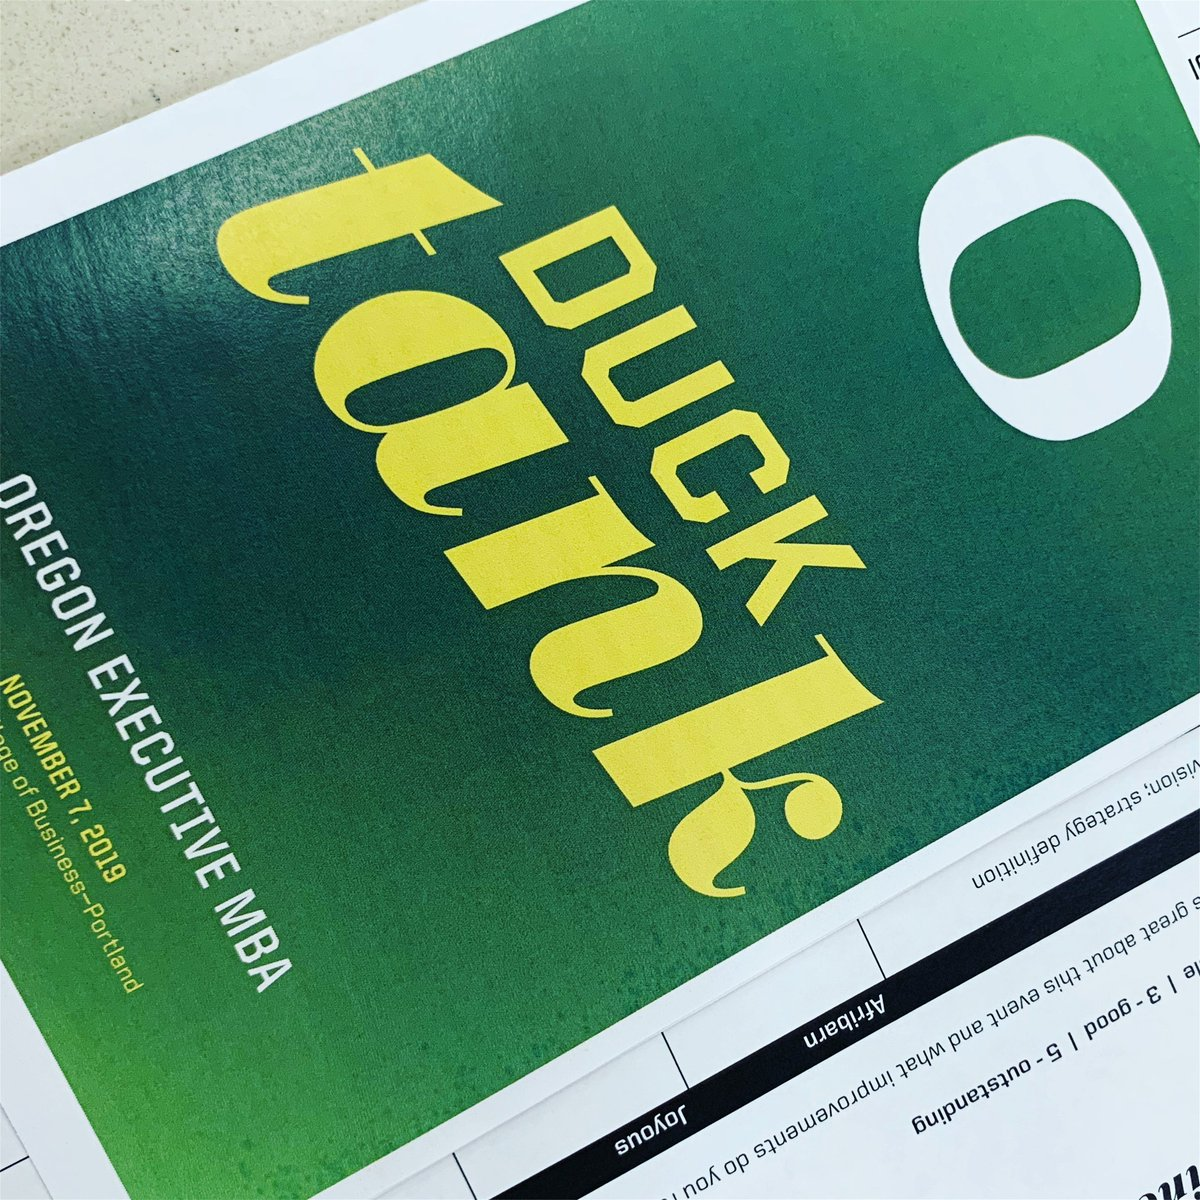 This year's Duck Tank was another success, thanks to the work of our wonderful alumni board. Many thanks to the four competing teams, the judges panel, and the evening's awesome emcee @jordanrkent. PICS: https://uobiz.co/duck-tank-2019-pix…